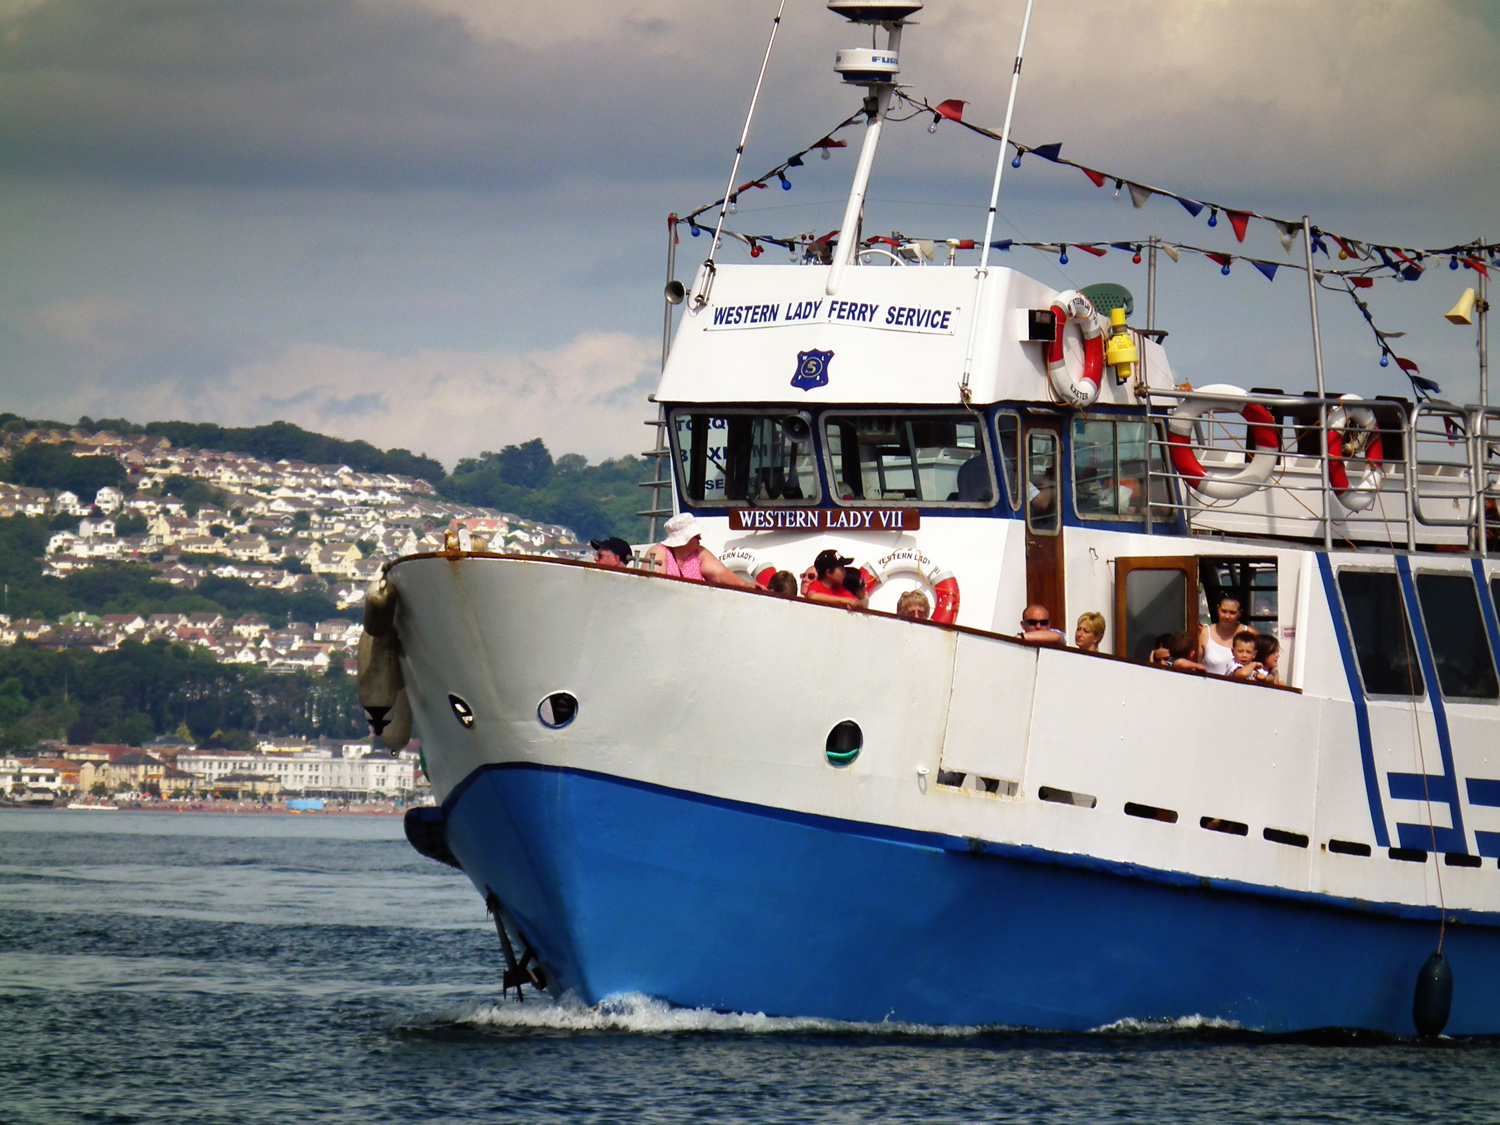 Passenger ferry services across Torbay linking the English Riviera towns - a great way for people on short breaks to travel in the spring,summer and autumn